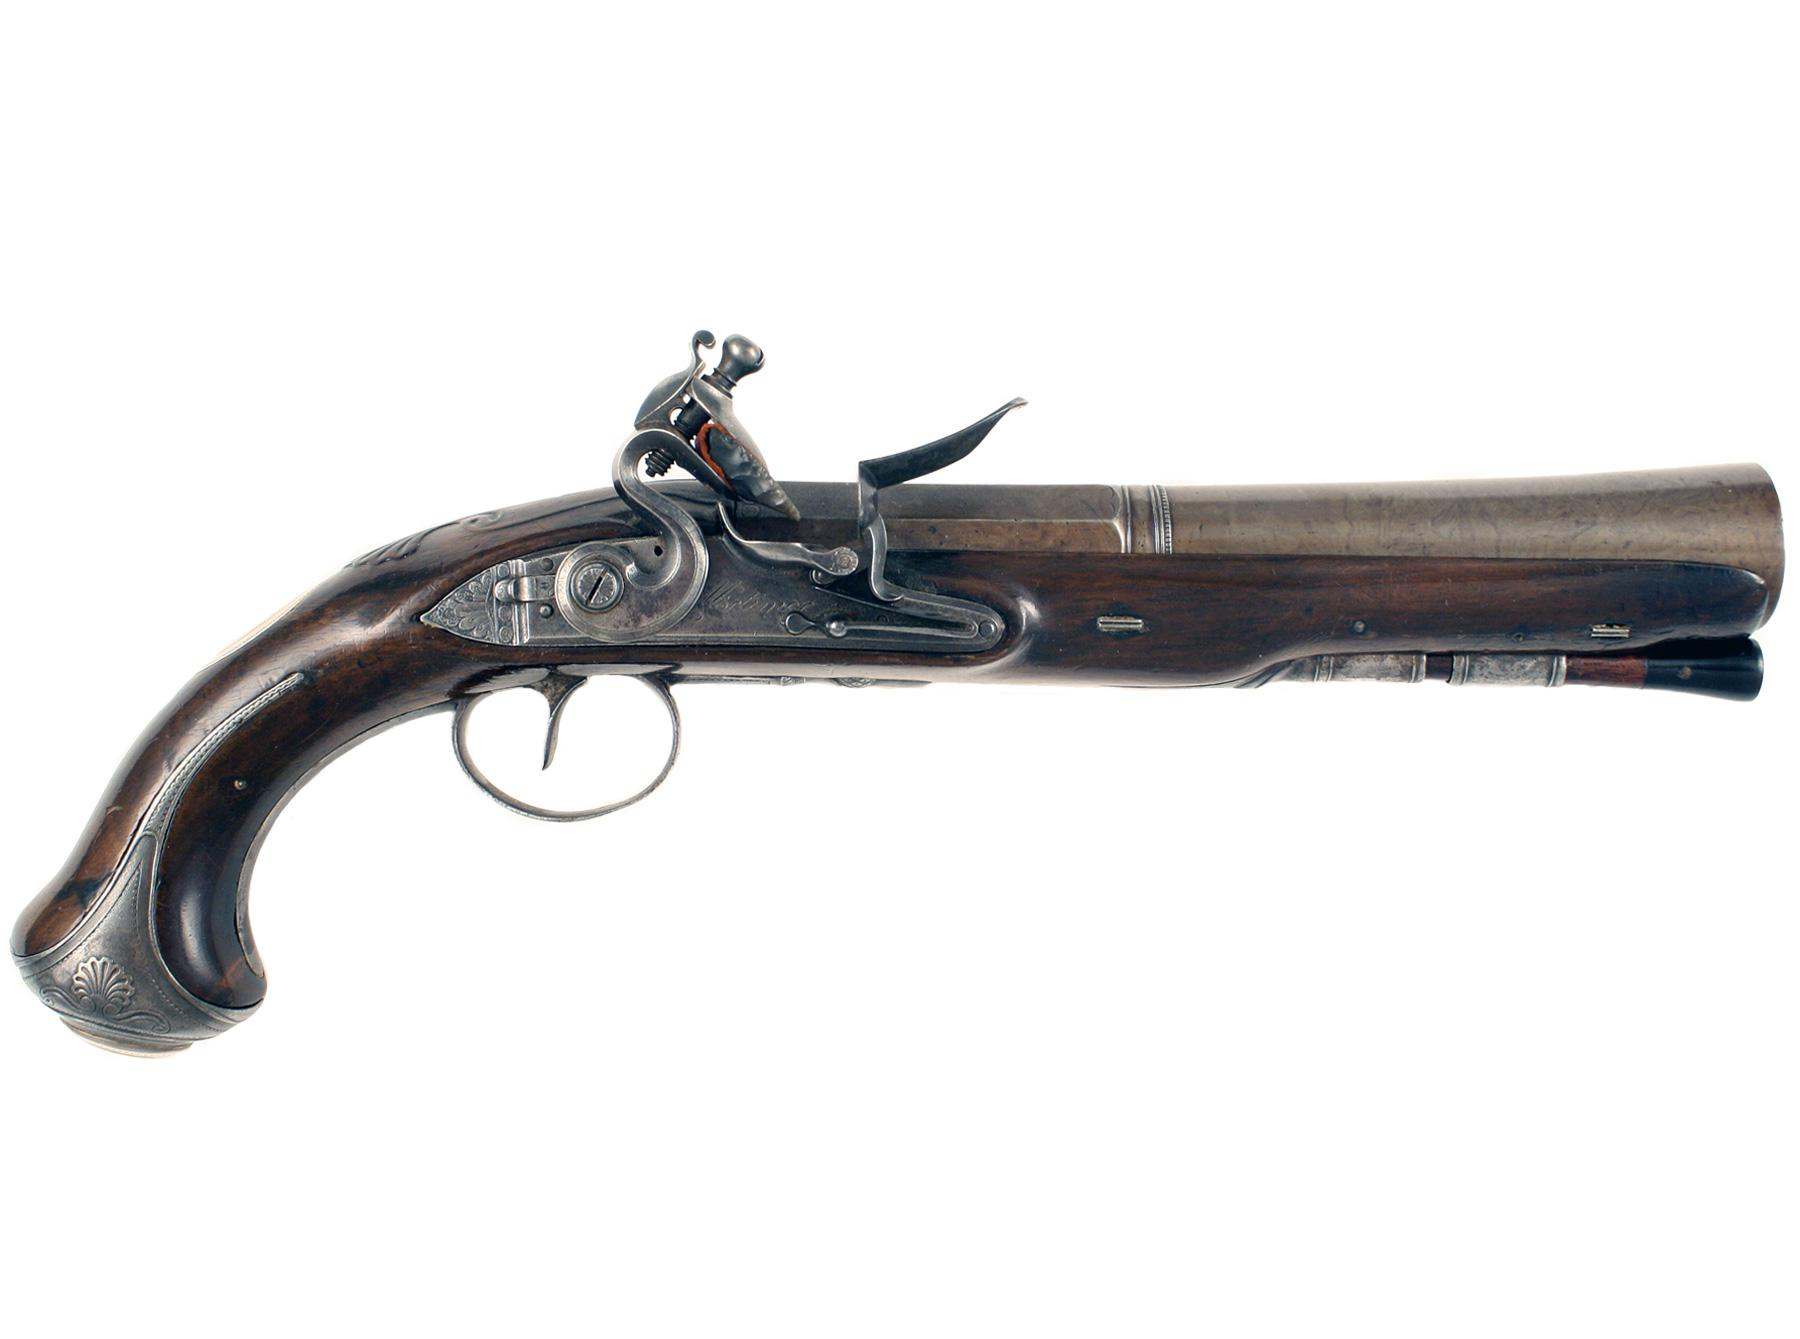 A Superb Blunderbuss Pistol by Mortimer